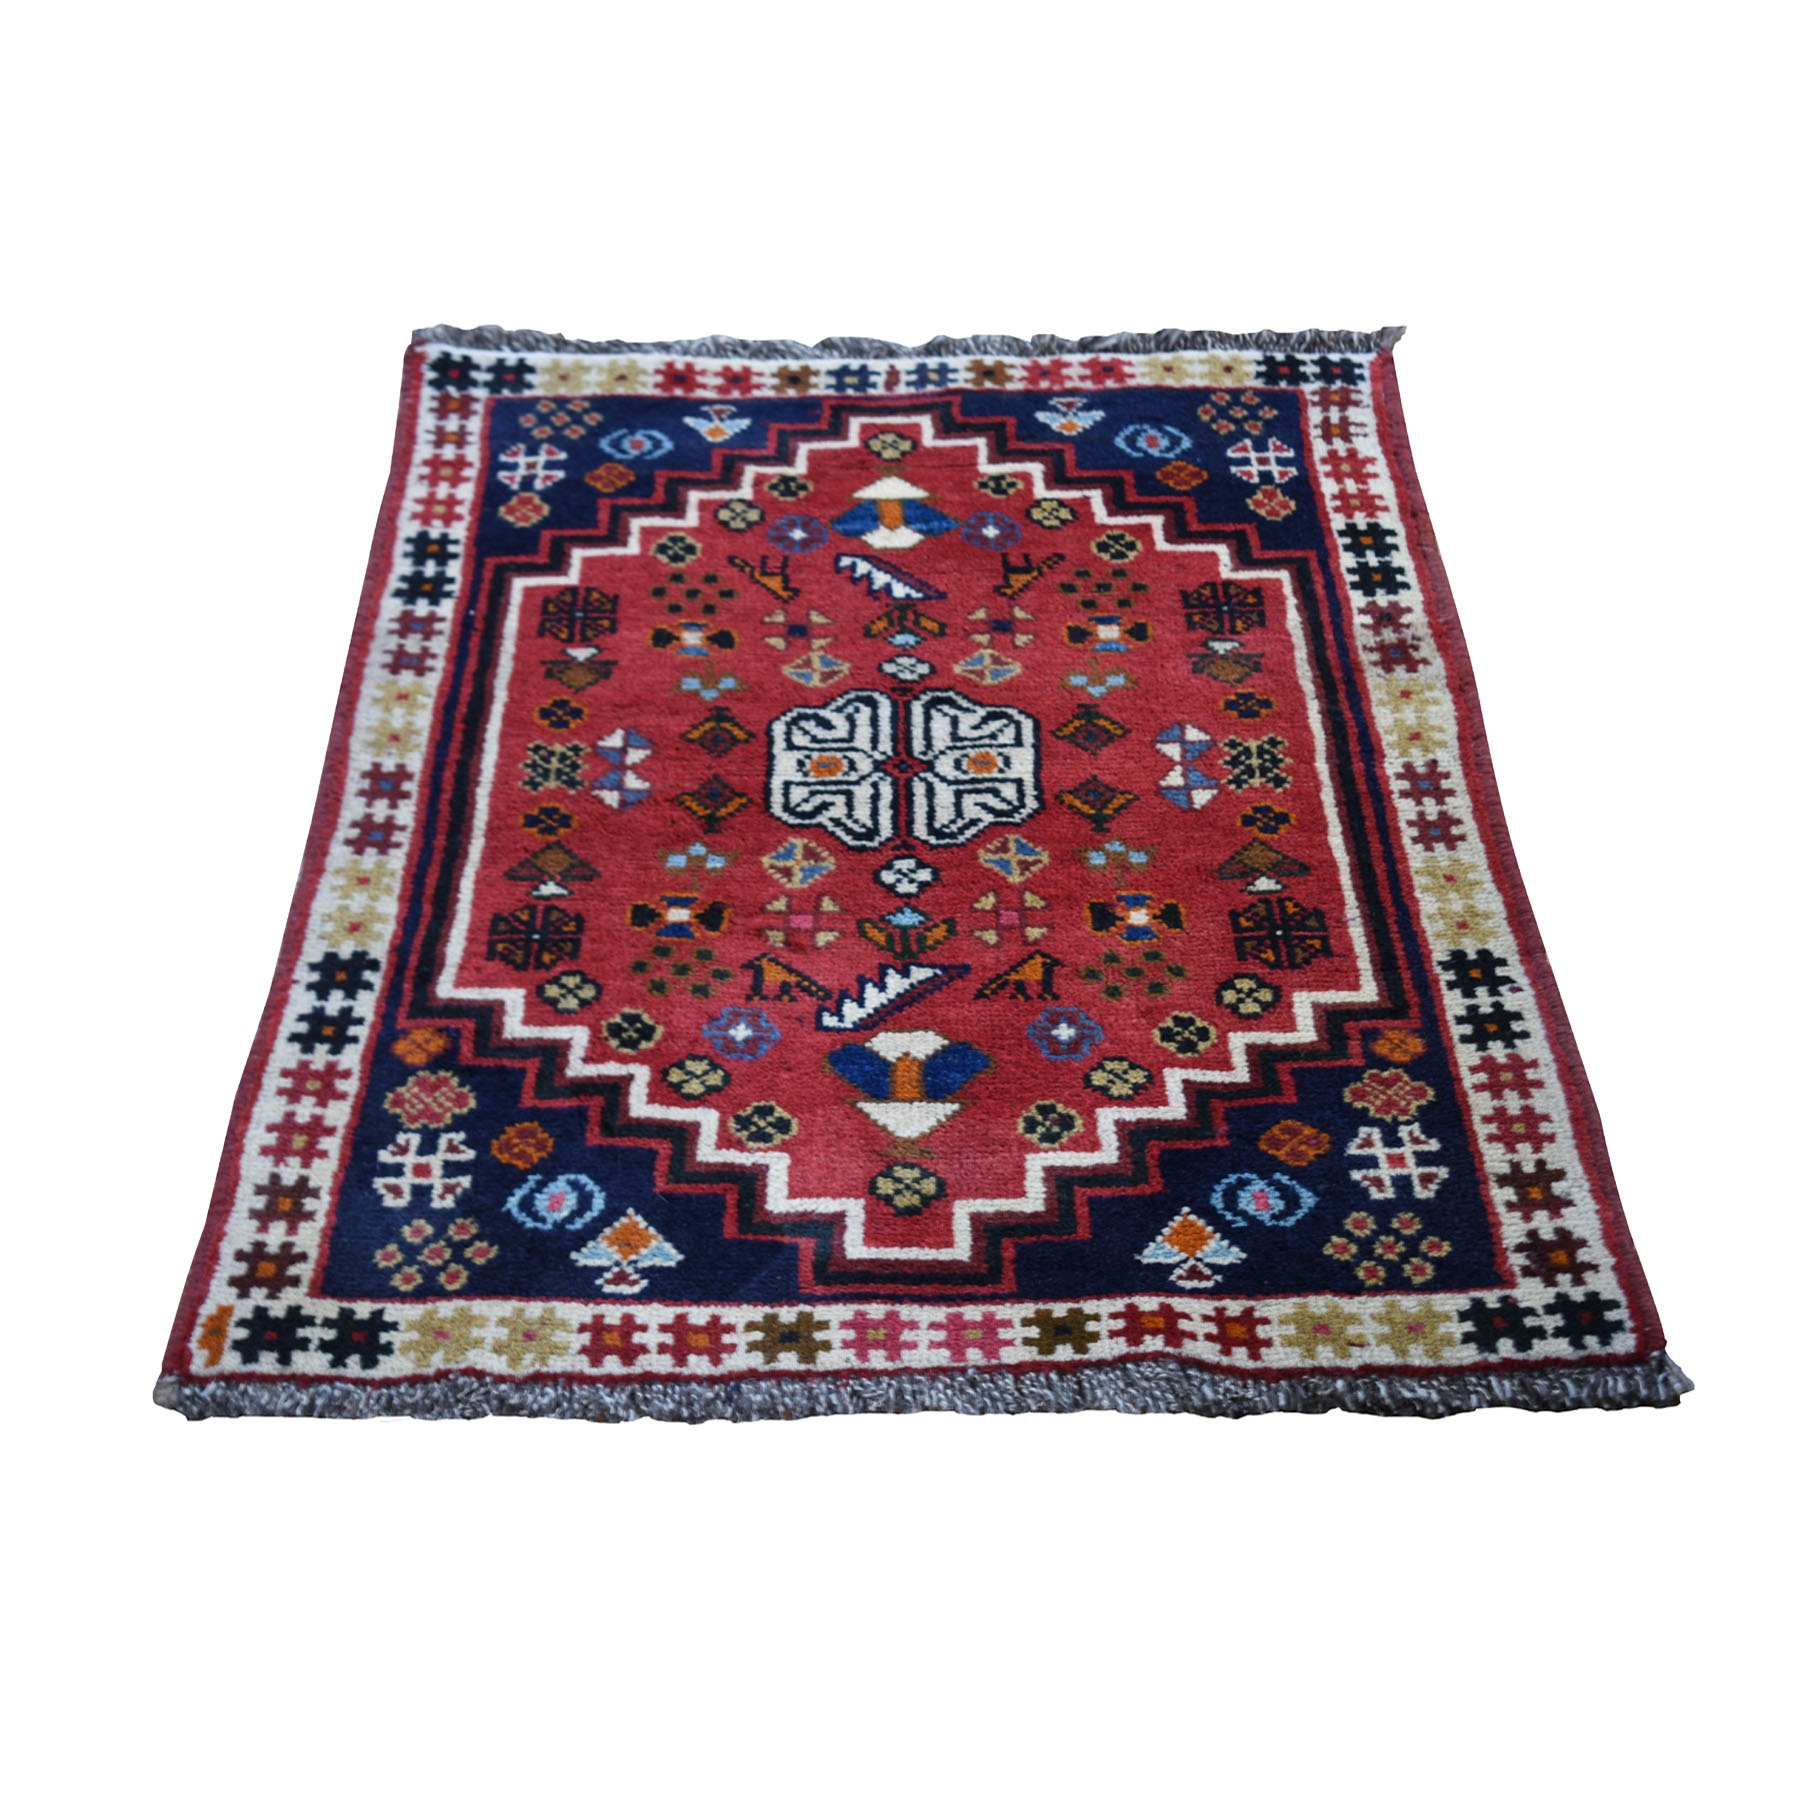 "2'4""x3'3"" Red New Persian Shiraz With Figurines Nomad Vivid Hand Knotted Pure Wool Small Rug"